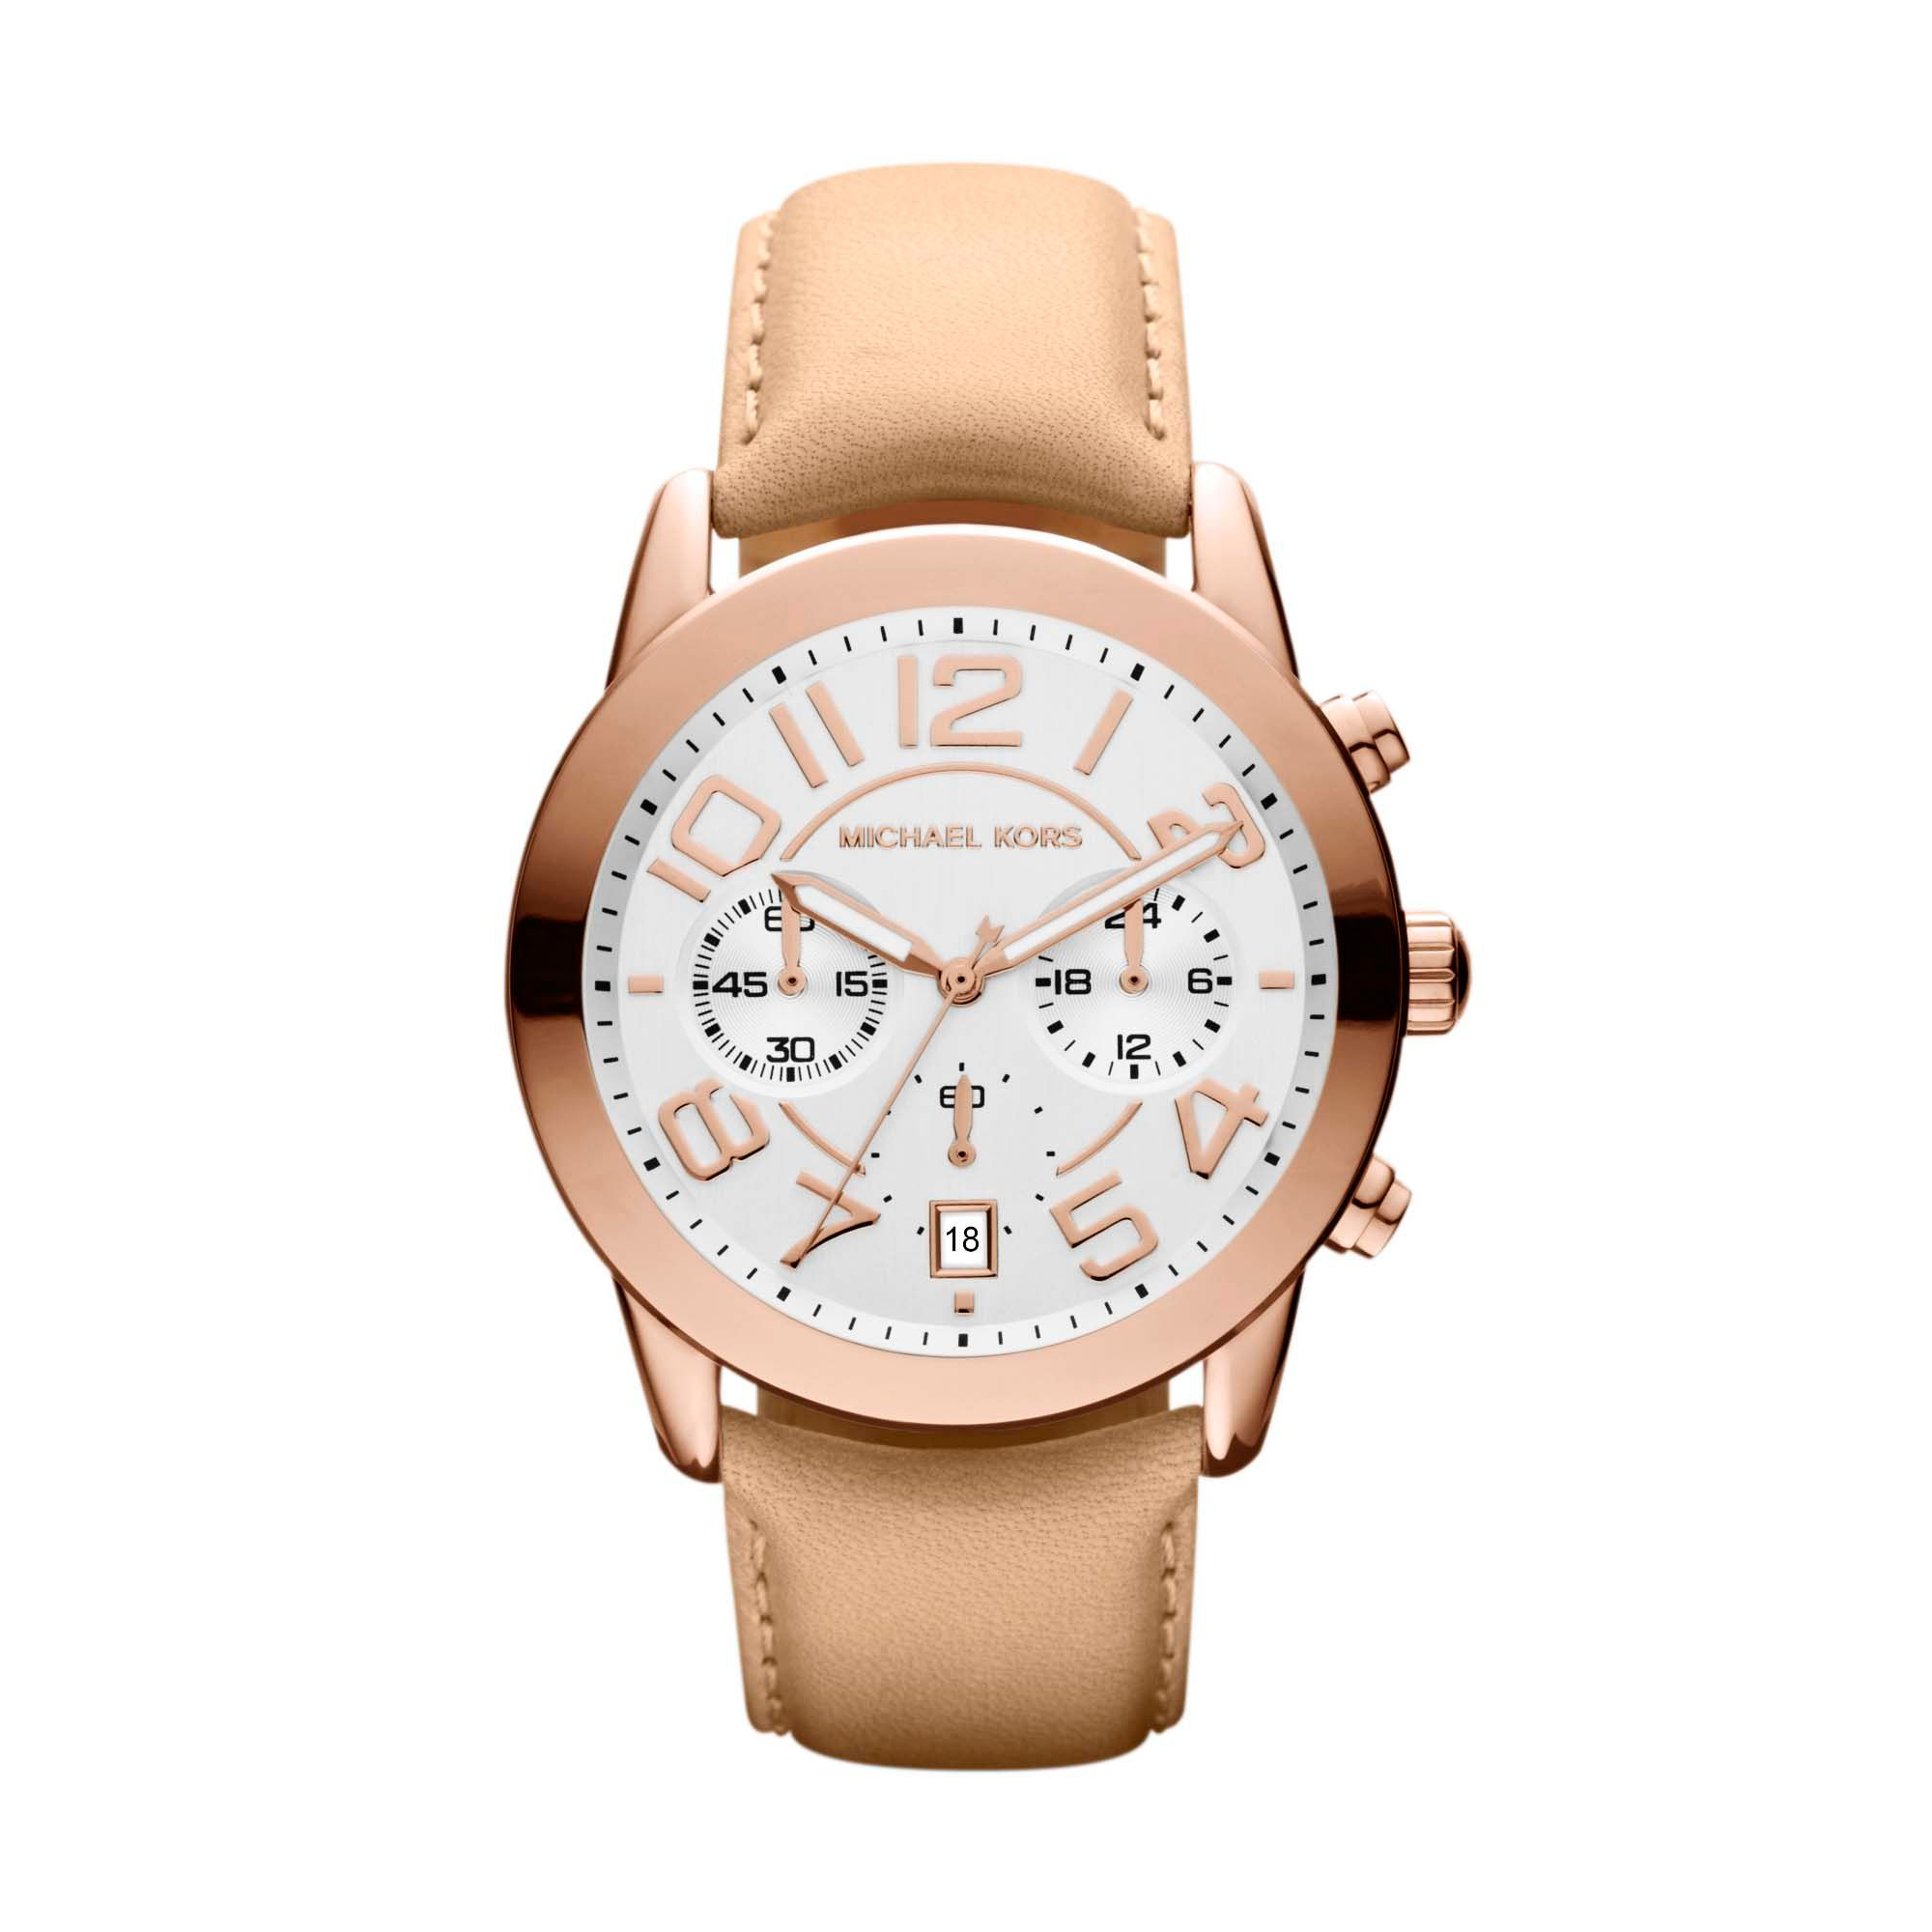 MK2283 nude genuine leather ladies watch